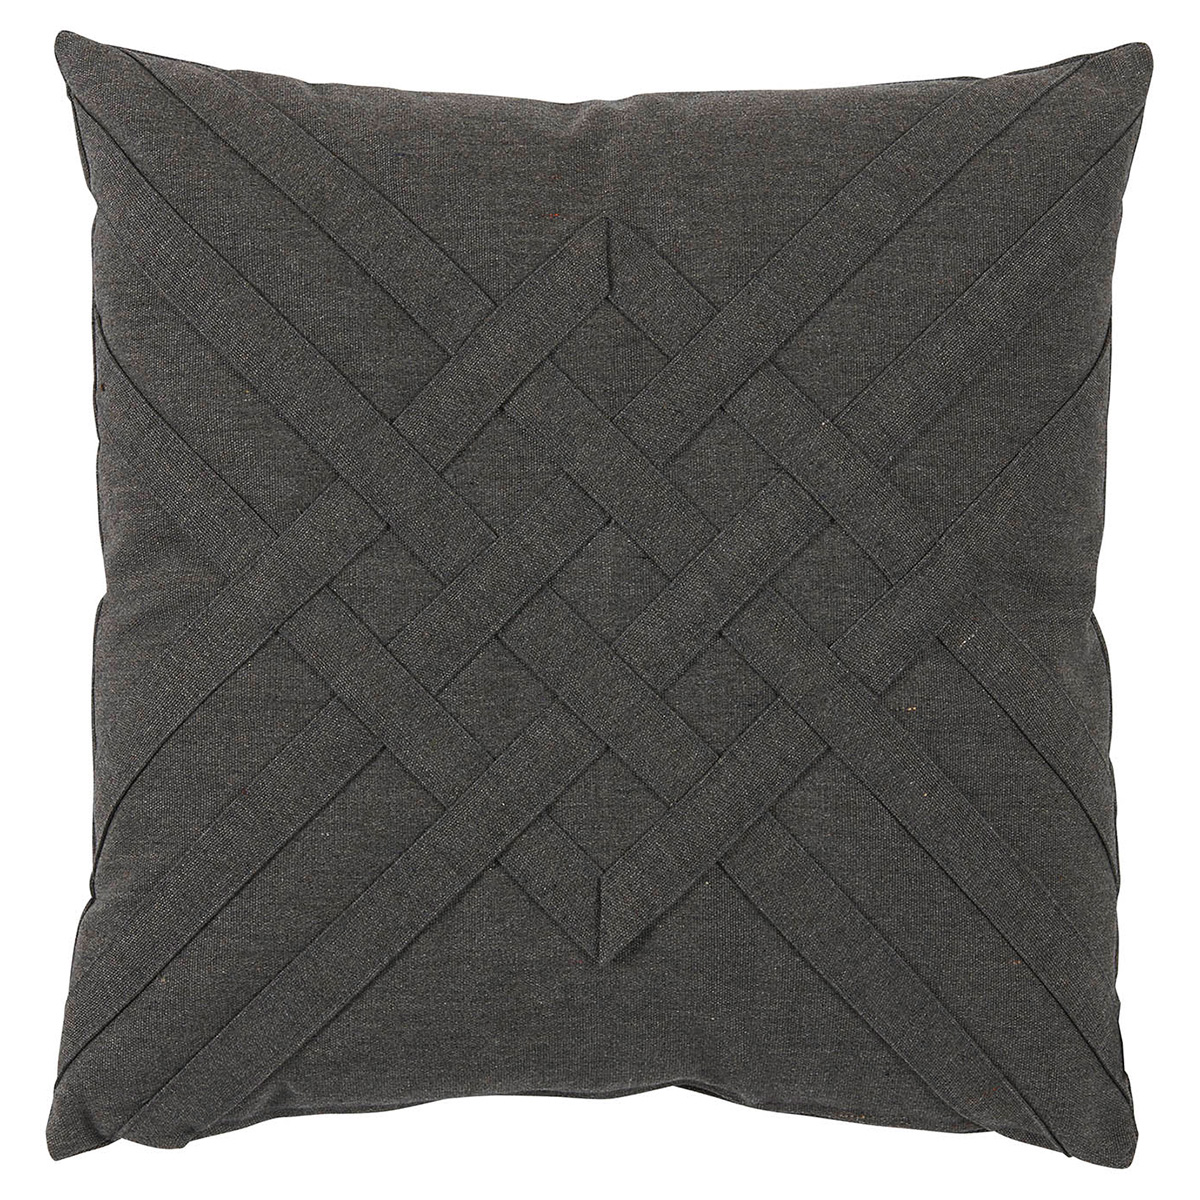 Will Modern Charcoal Lattice Weave Outdoor Pillow - 20x20